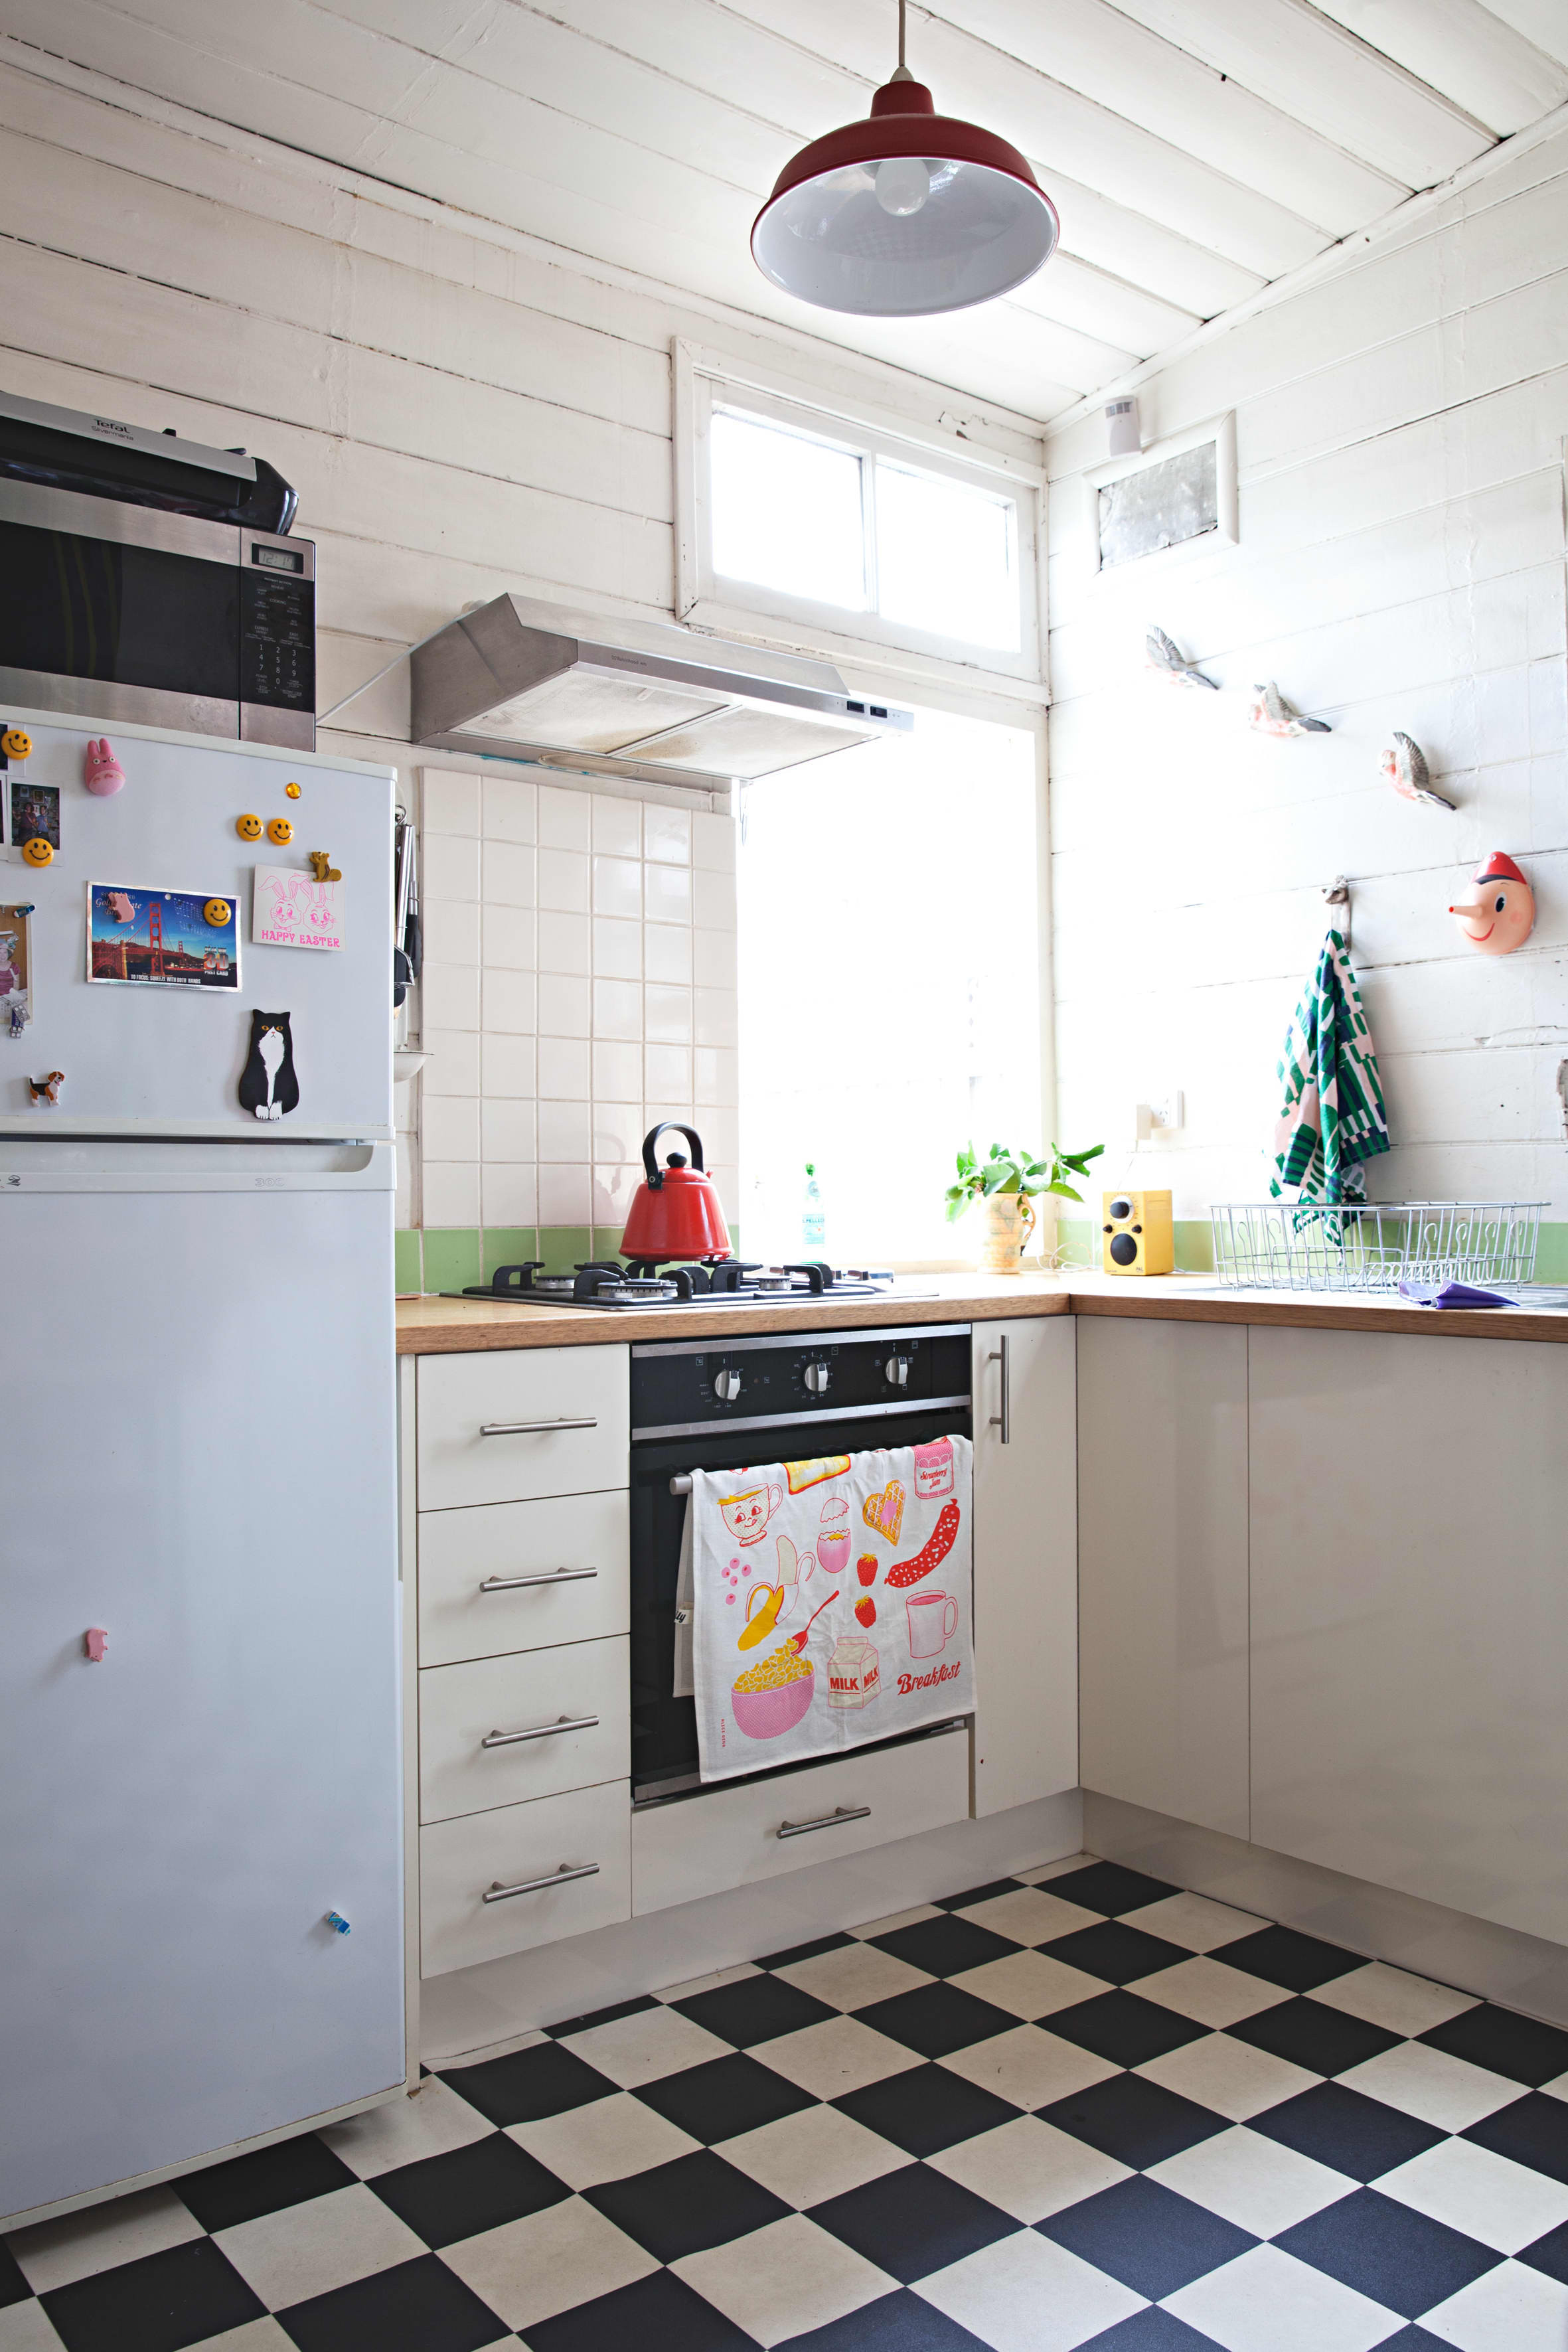 Best ideas about Storage Ideas For Small Kitchens . Save or Pin The 21 Best Storage Ideas for Small Kitchens Now.